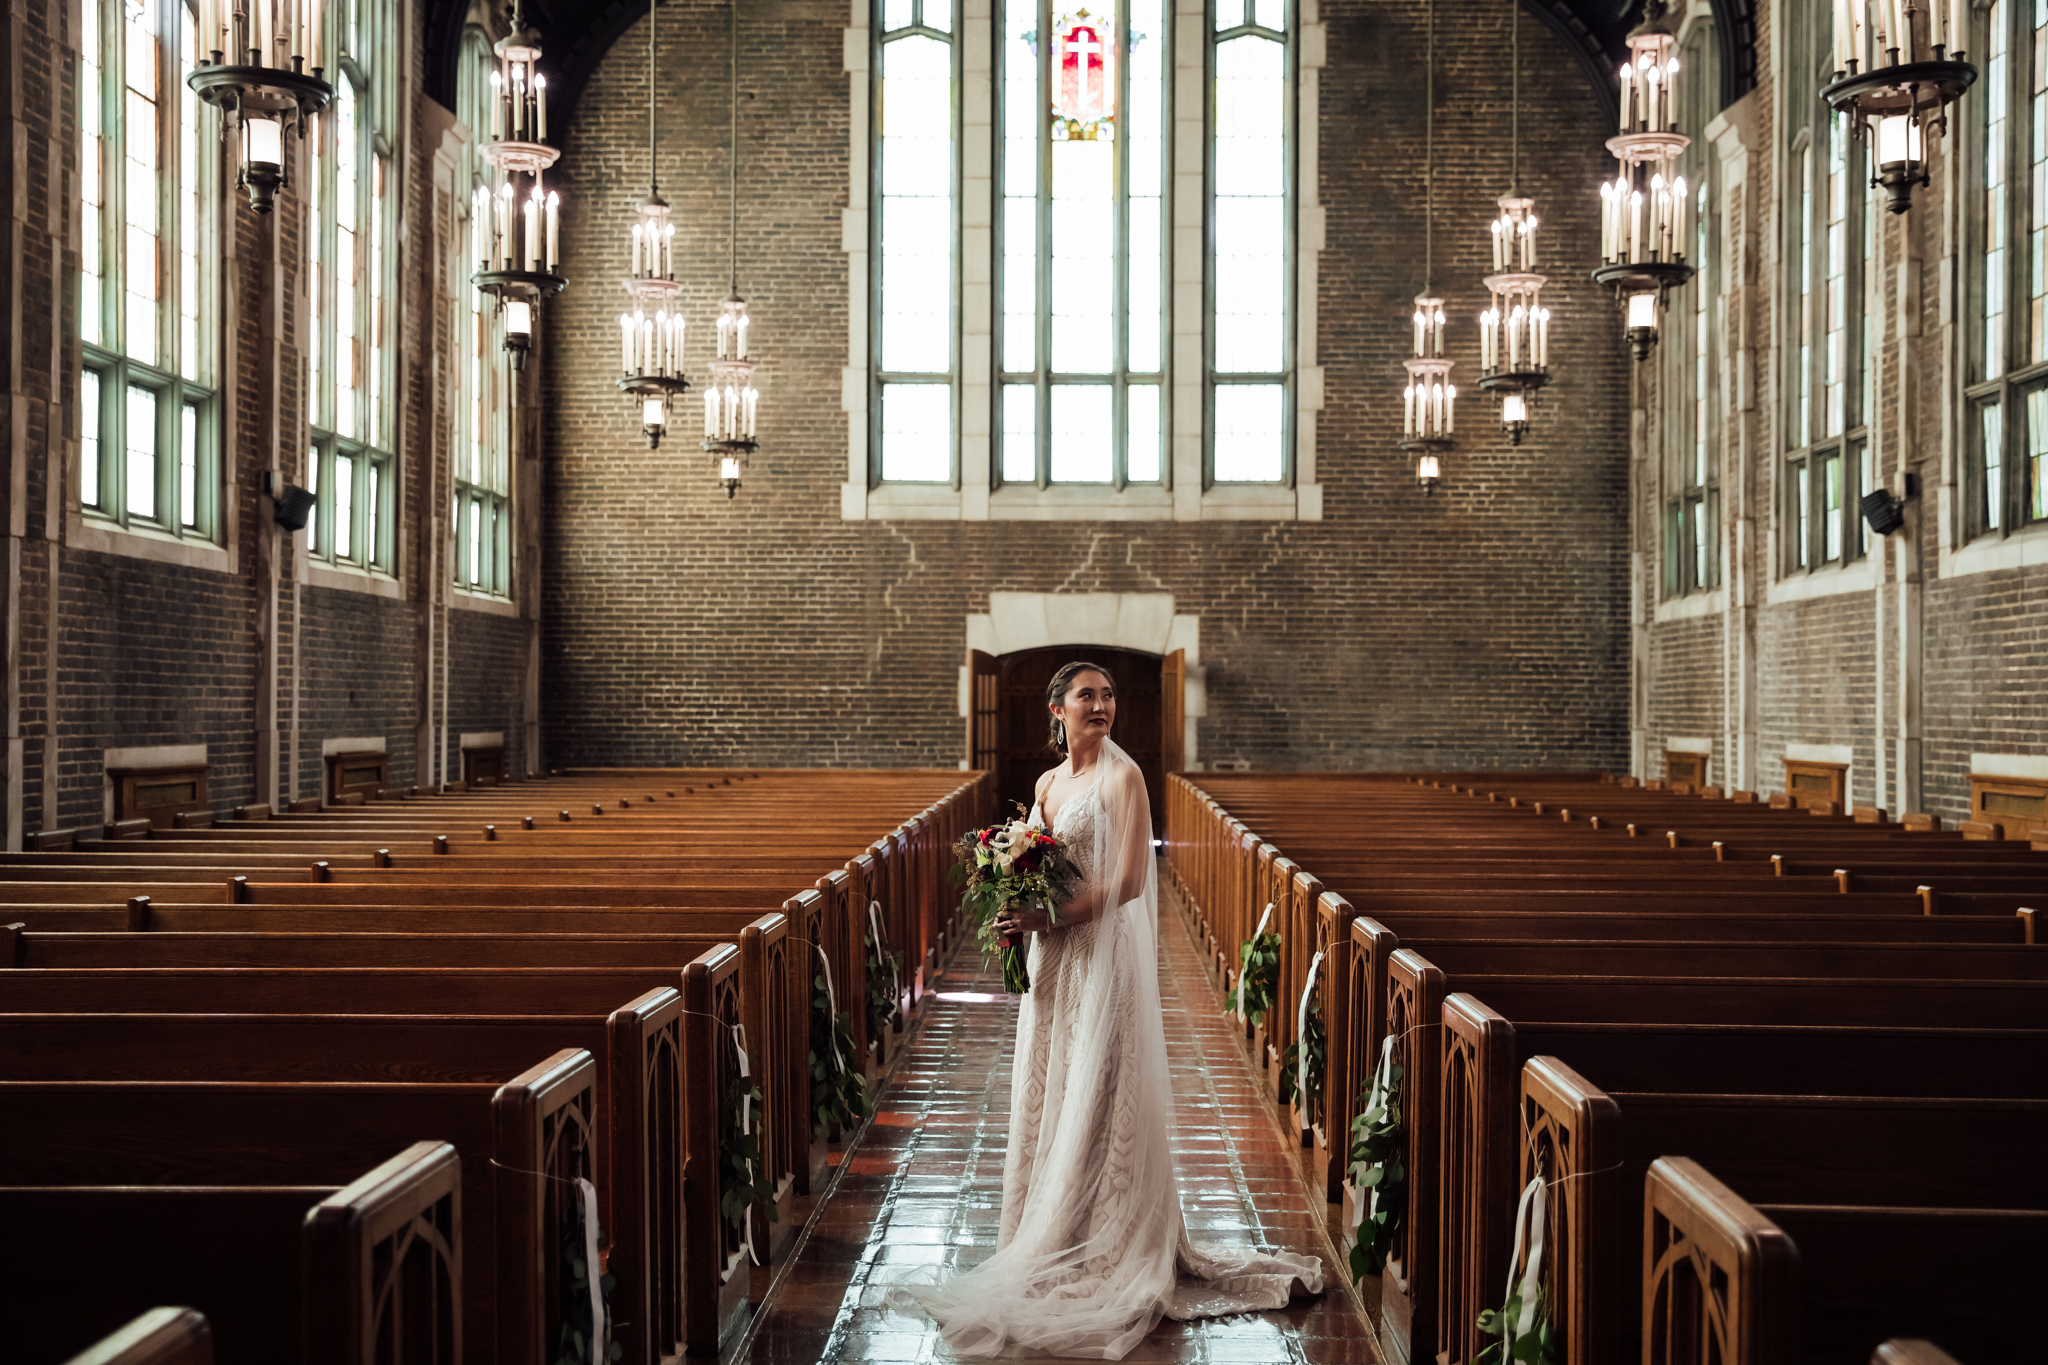 chattanooga-wedding-photographers-thewarmtharoundyou-waterhouse-pavilion-patten-chapel-wedding-sam-dusty (42 of 269).jpg